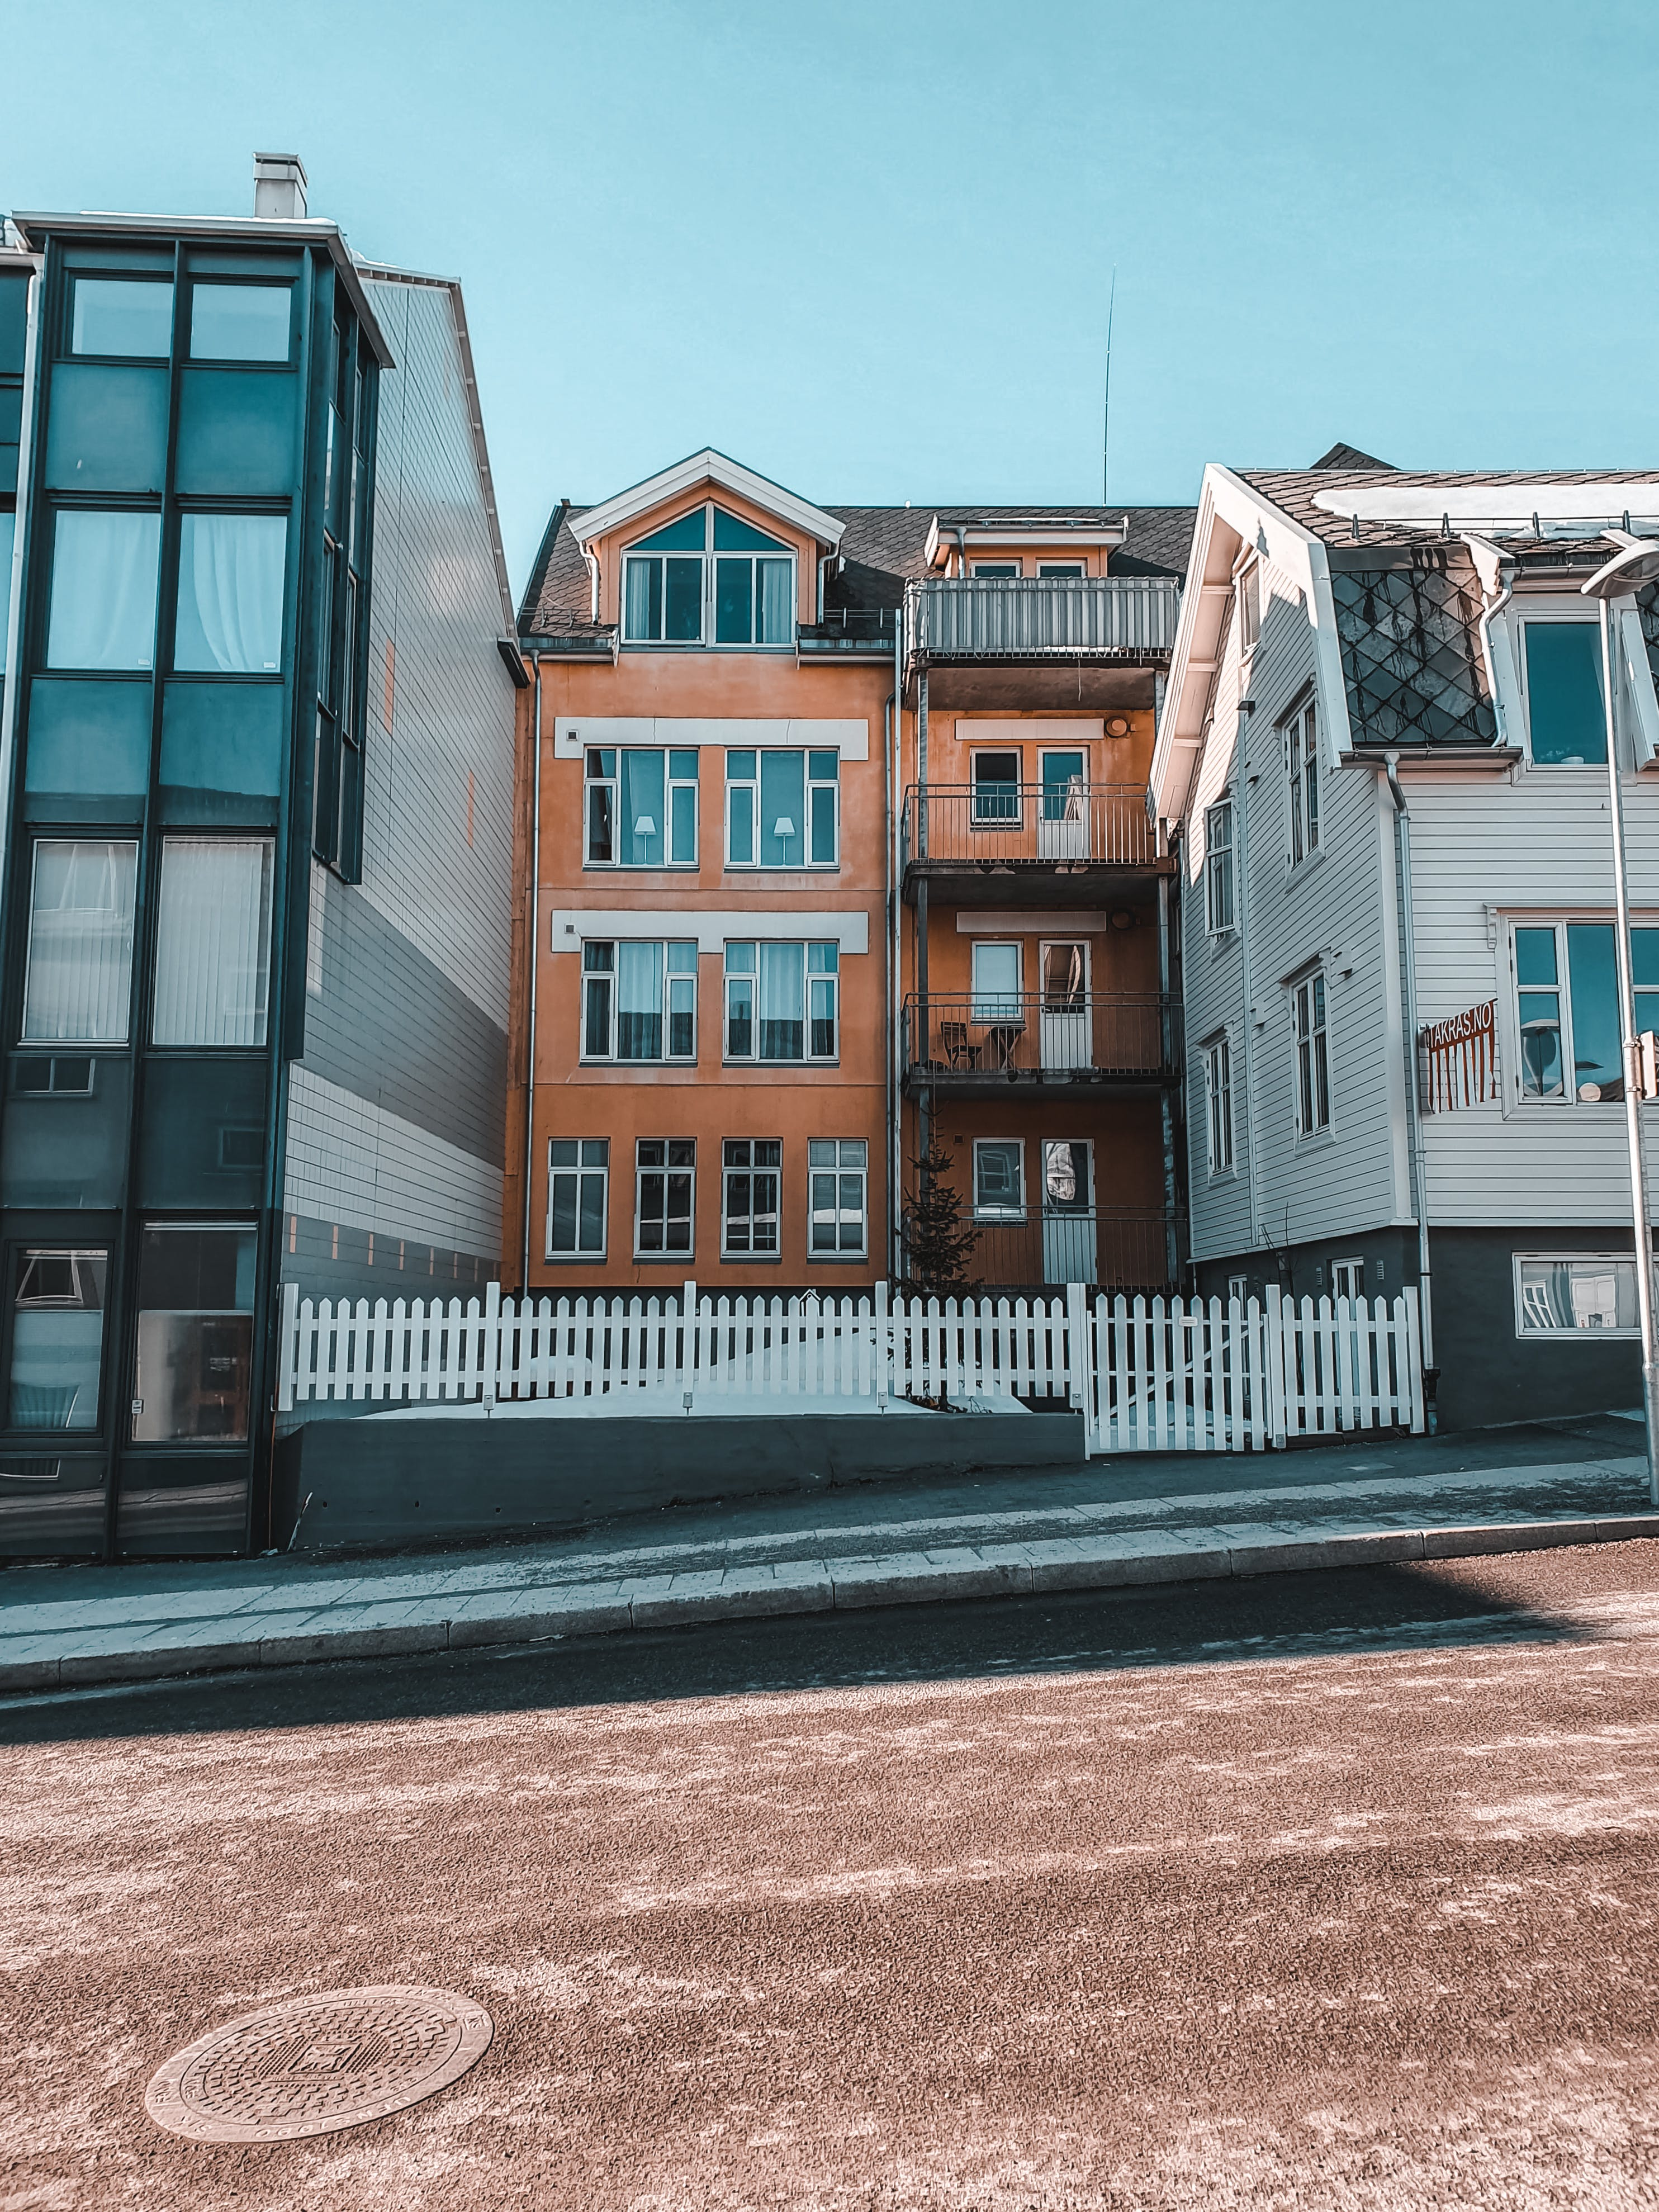 Photo of Brown and White Houses